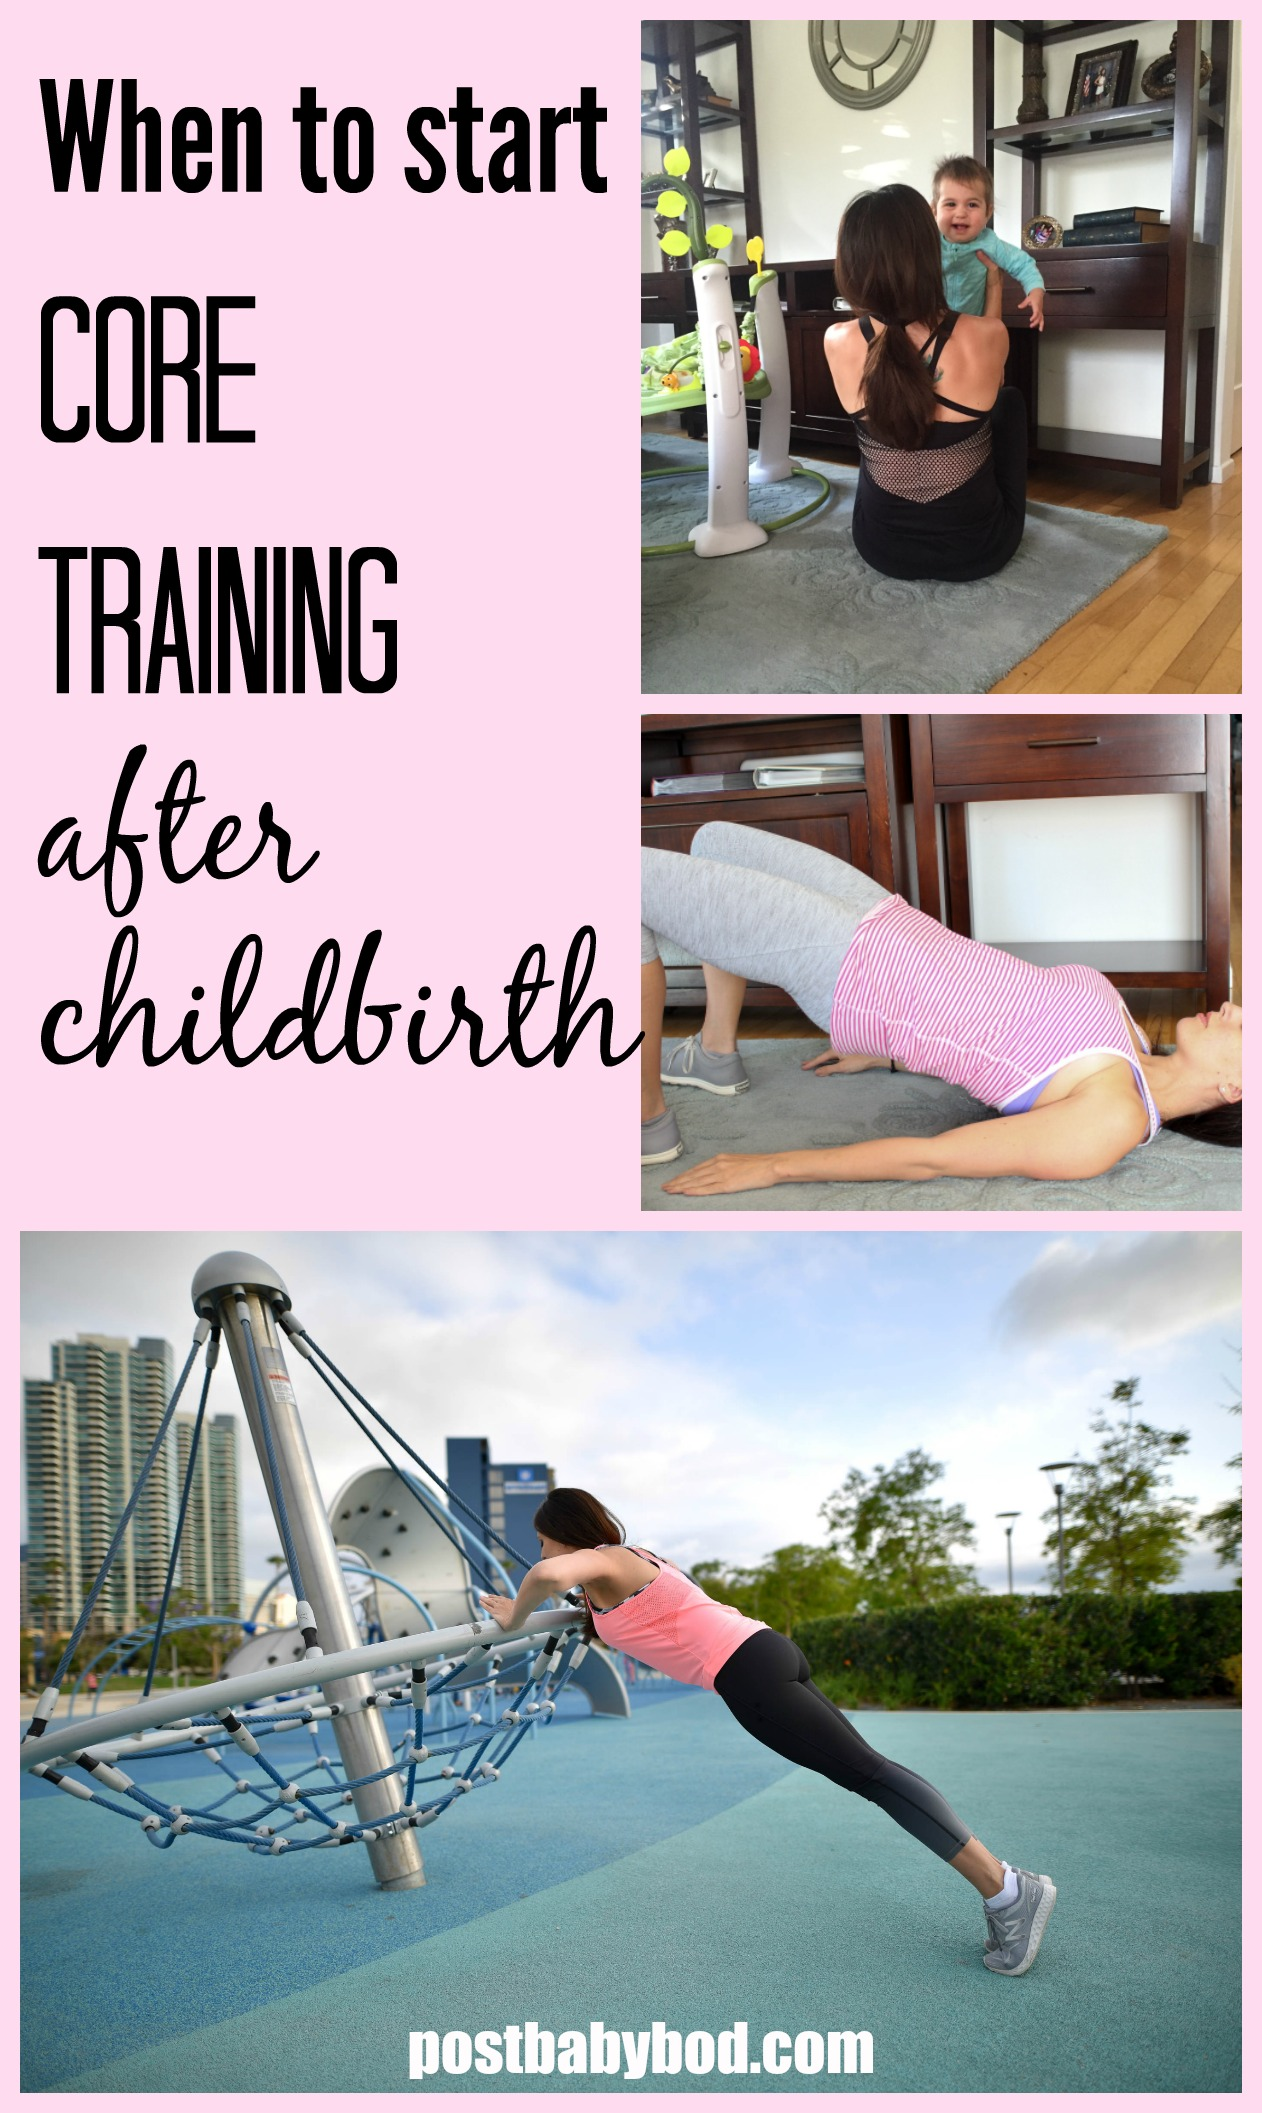 when to start core training after childbirth post baby bod